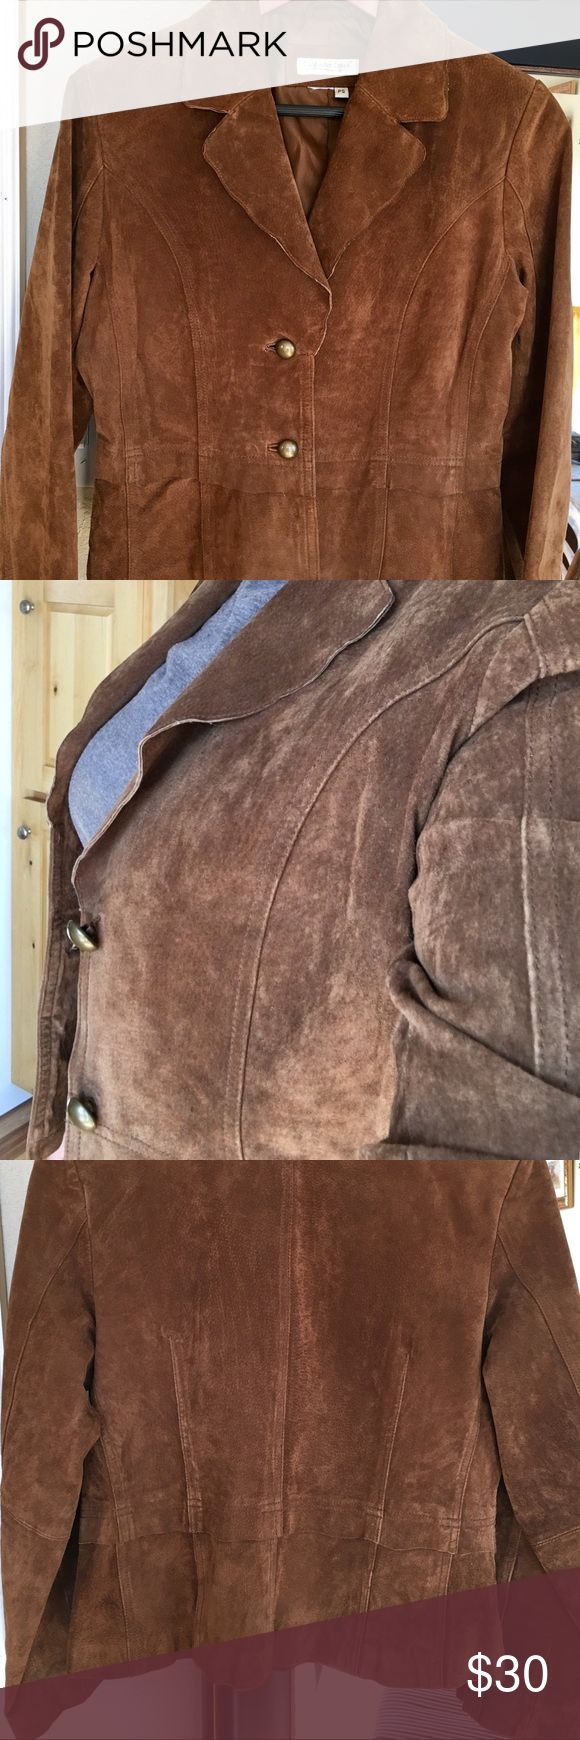 LEATHER COLDWATER CREEK JACKET LEATHER COLDWATER CREEK JACKET Coldwater Creek Jackets & Coats